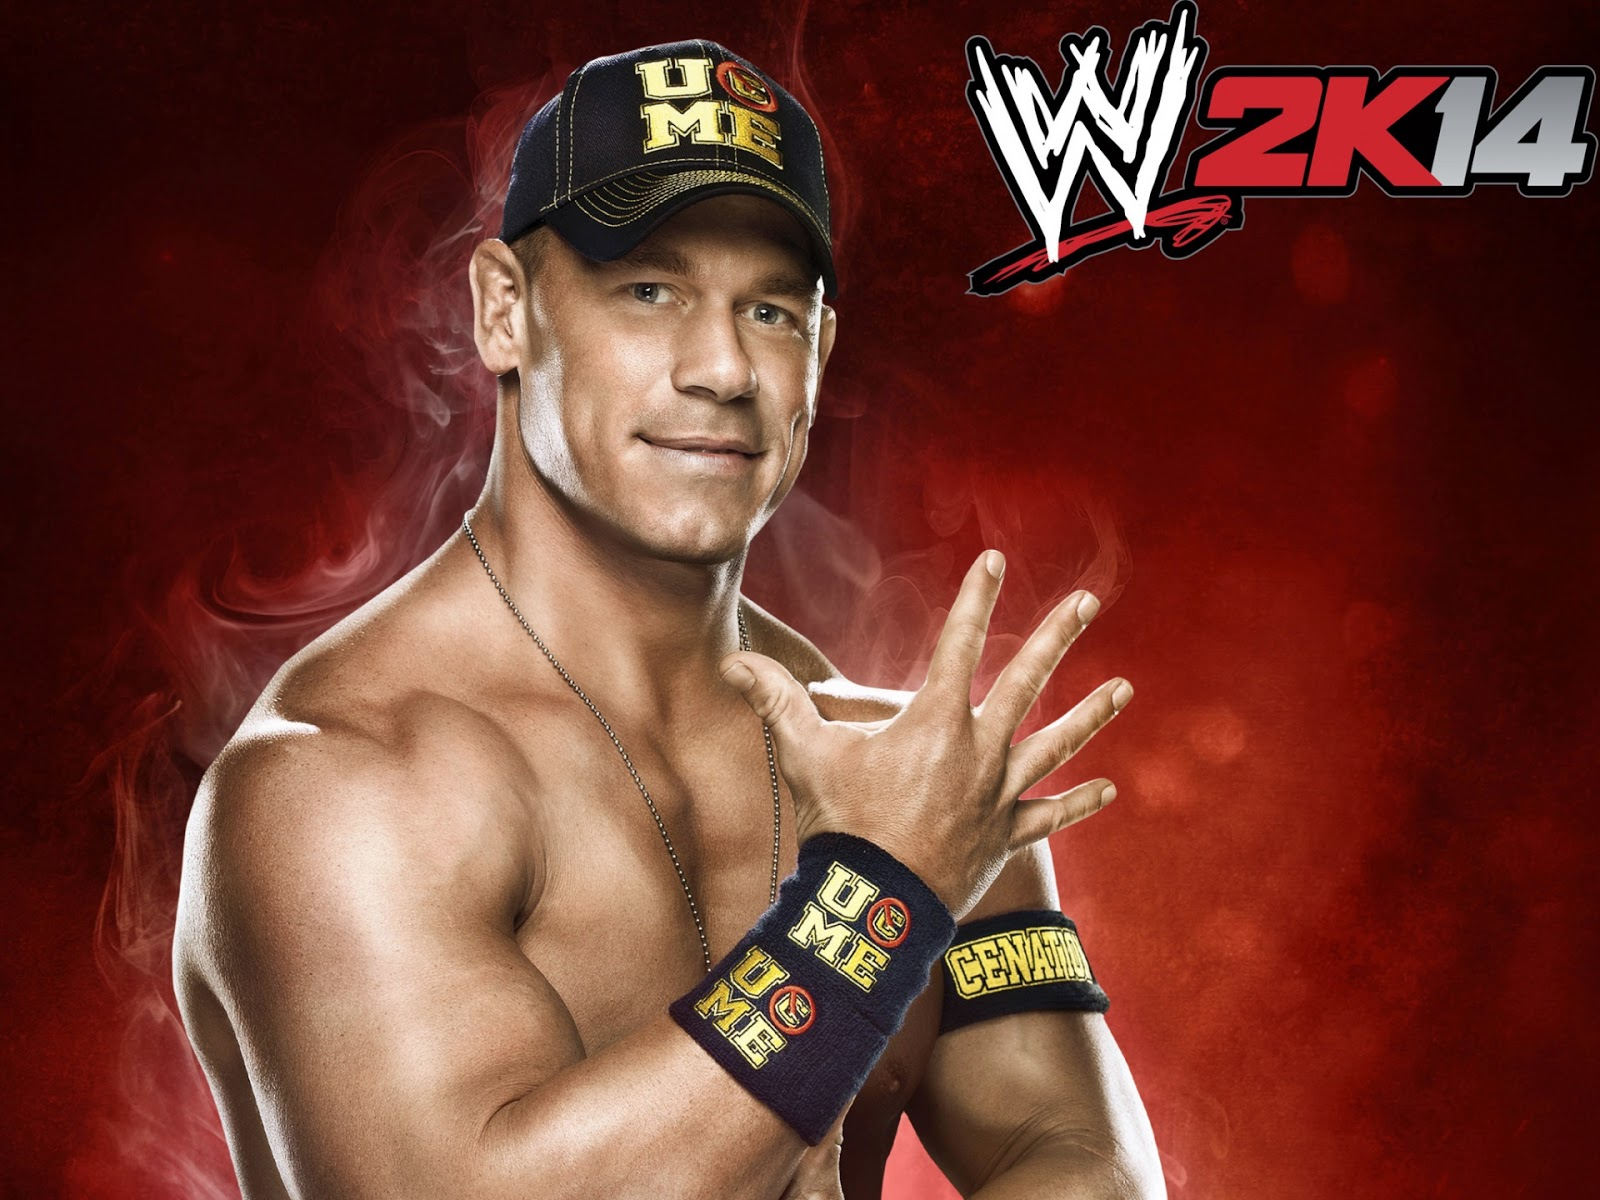 Very Cute Girl Hd Wallpapers Wwe John Cena Images Hd Wallpaper All 4u Wallpaper